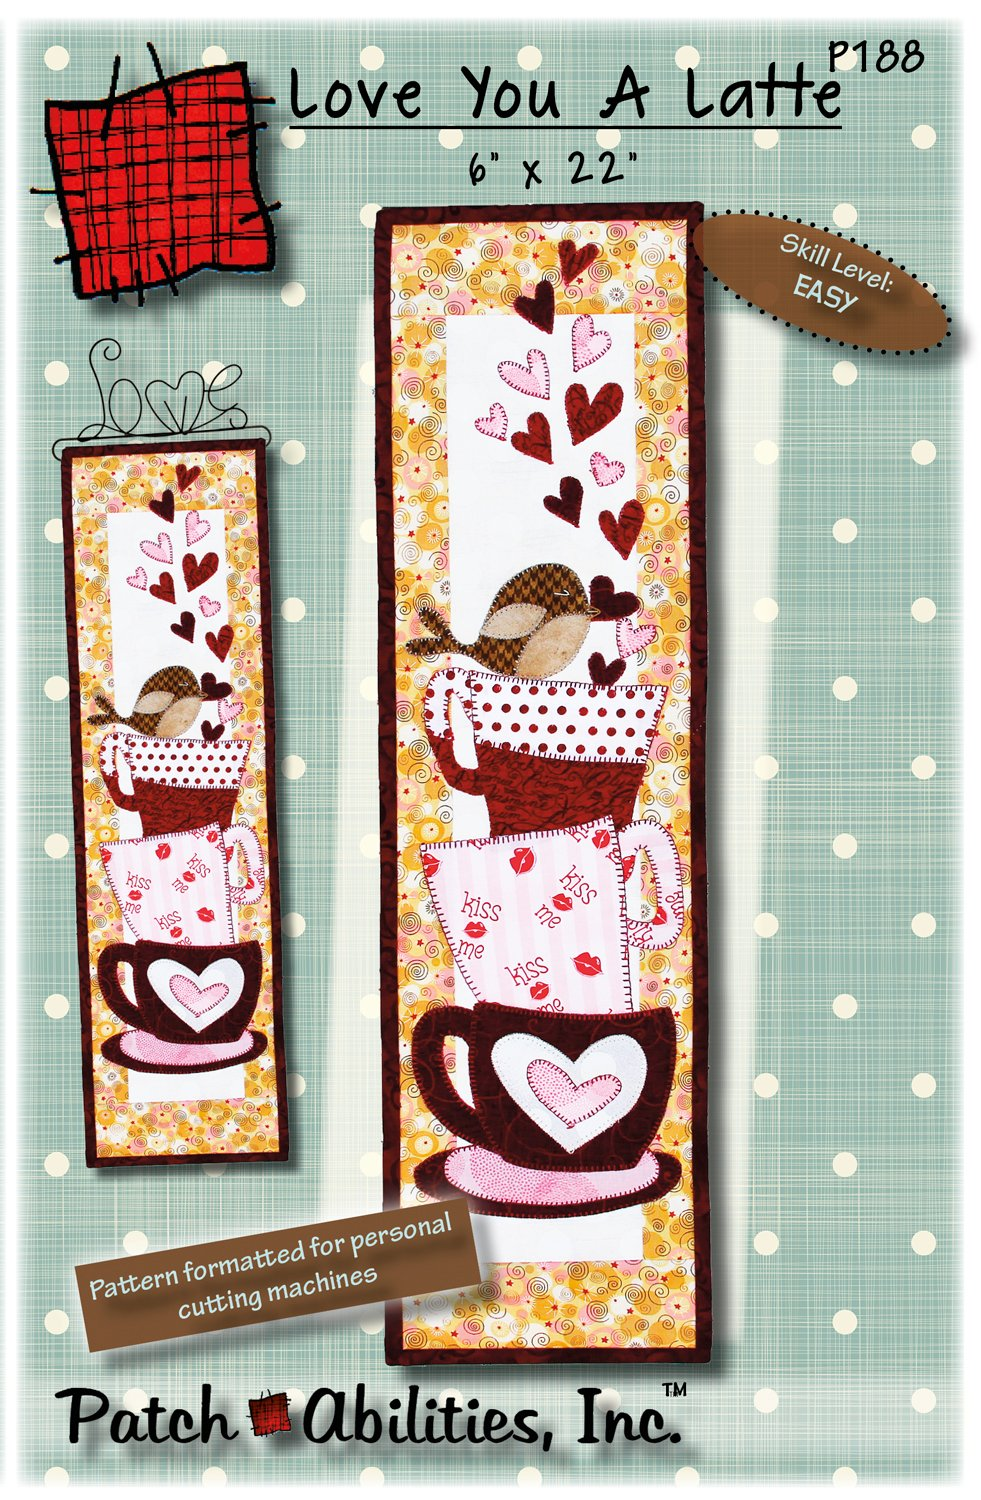 P188 Love you A Latte - DIGITAL DOWNLOAD PATTERN